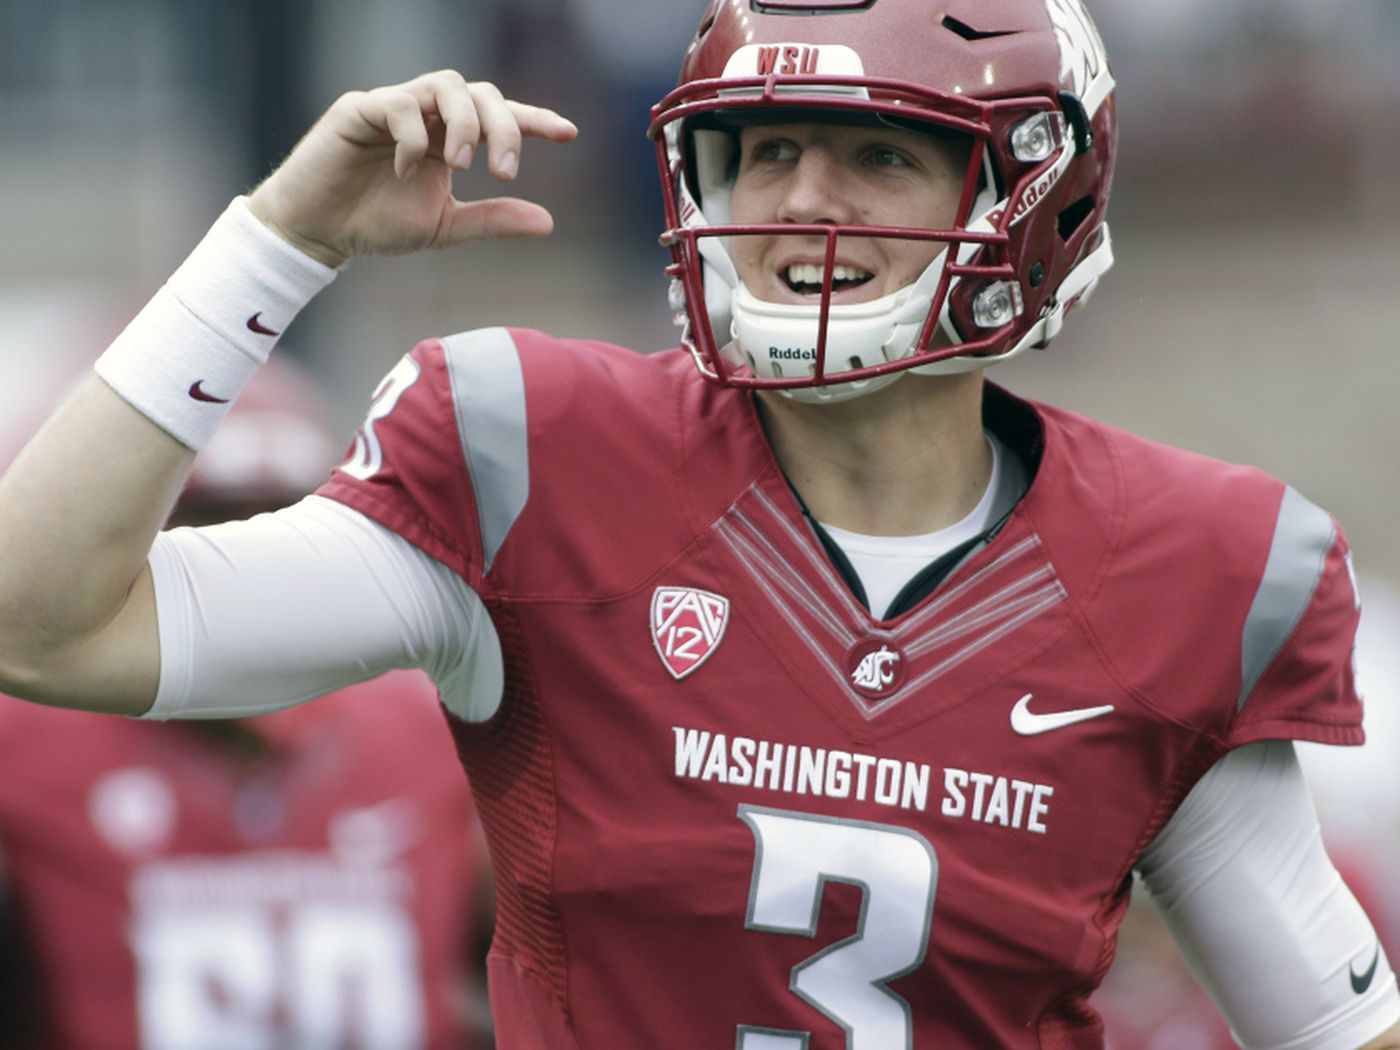 Washington State football player Tyler Hilinski had CTE at time of suicide - Chicago Sun-Times